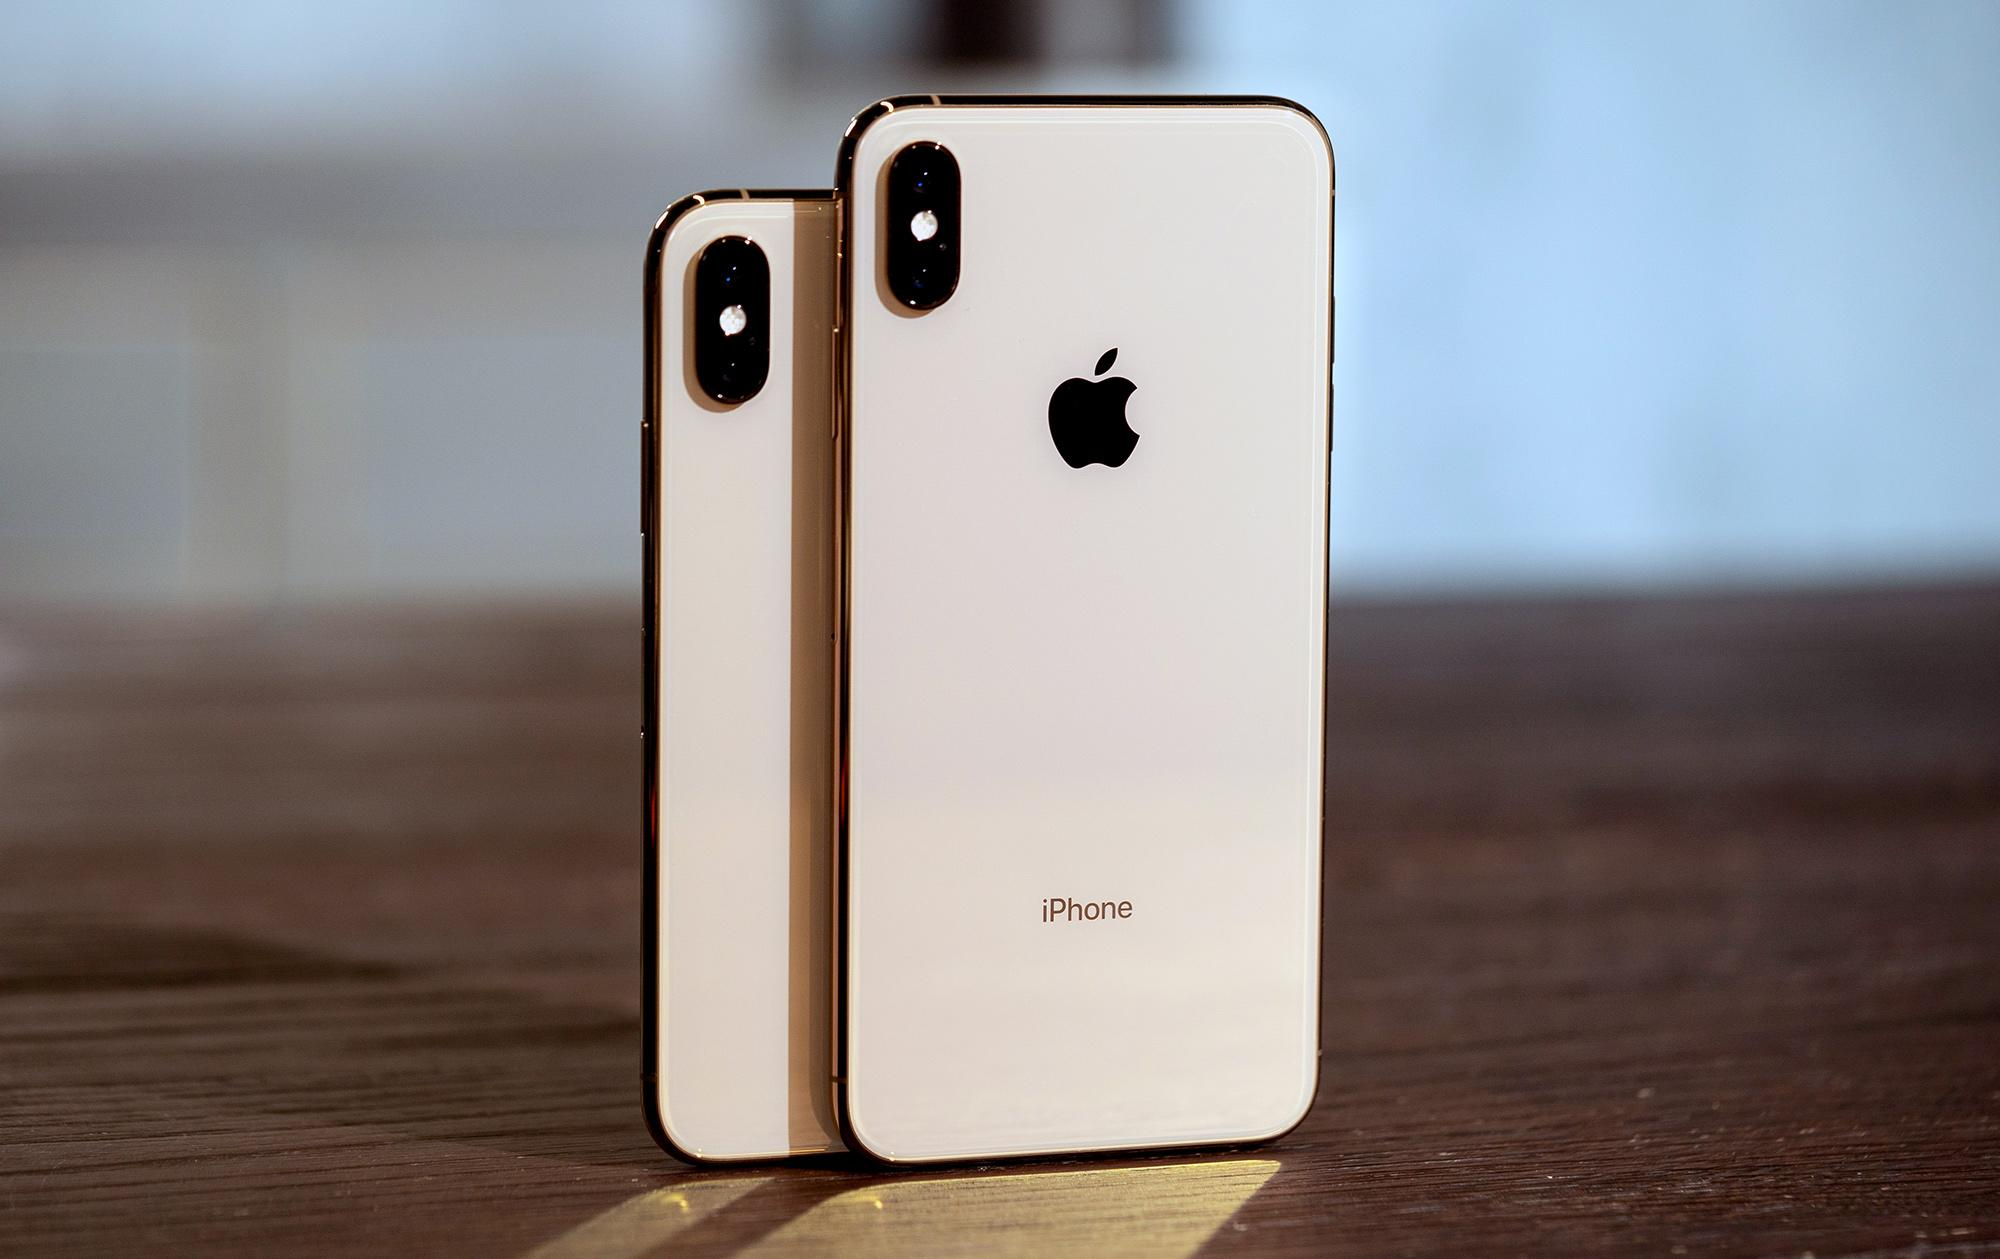 Apple and Samsung to Face Supply Issues Due to COVID-19 Surge